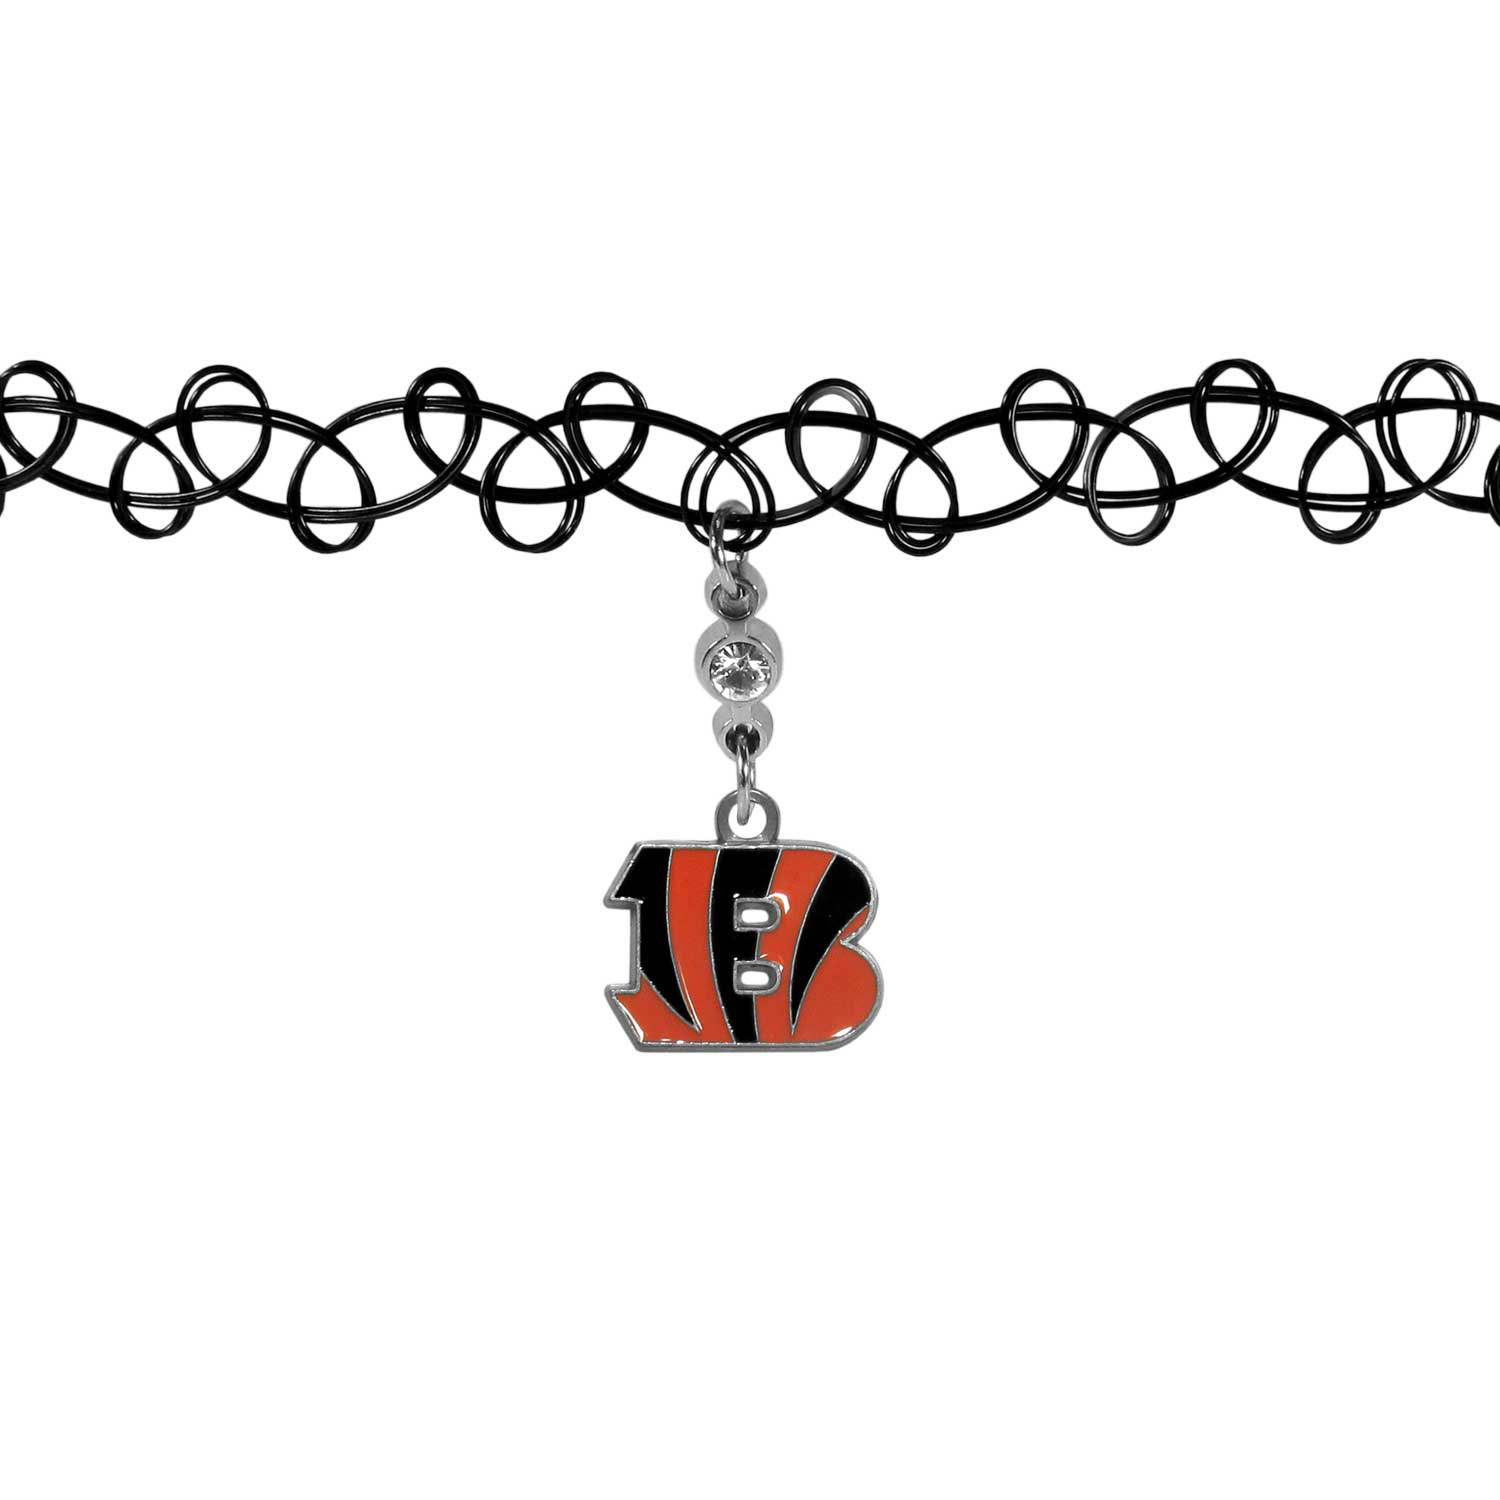 Cincinnati Bengals Knotted Choker - This retro, knotted choker is a cool and unique piece of fan jewelry. The tattoo style choker features a high polish Cincinnati Bengals charm with rhinestone accents.